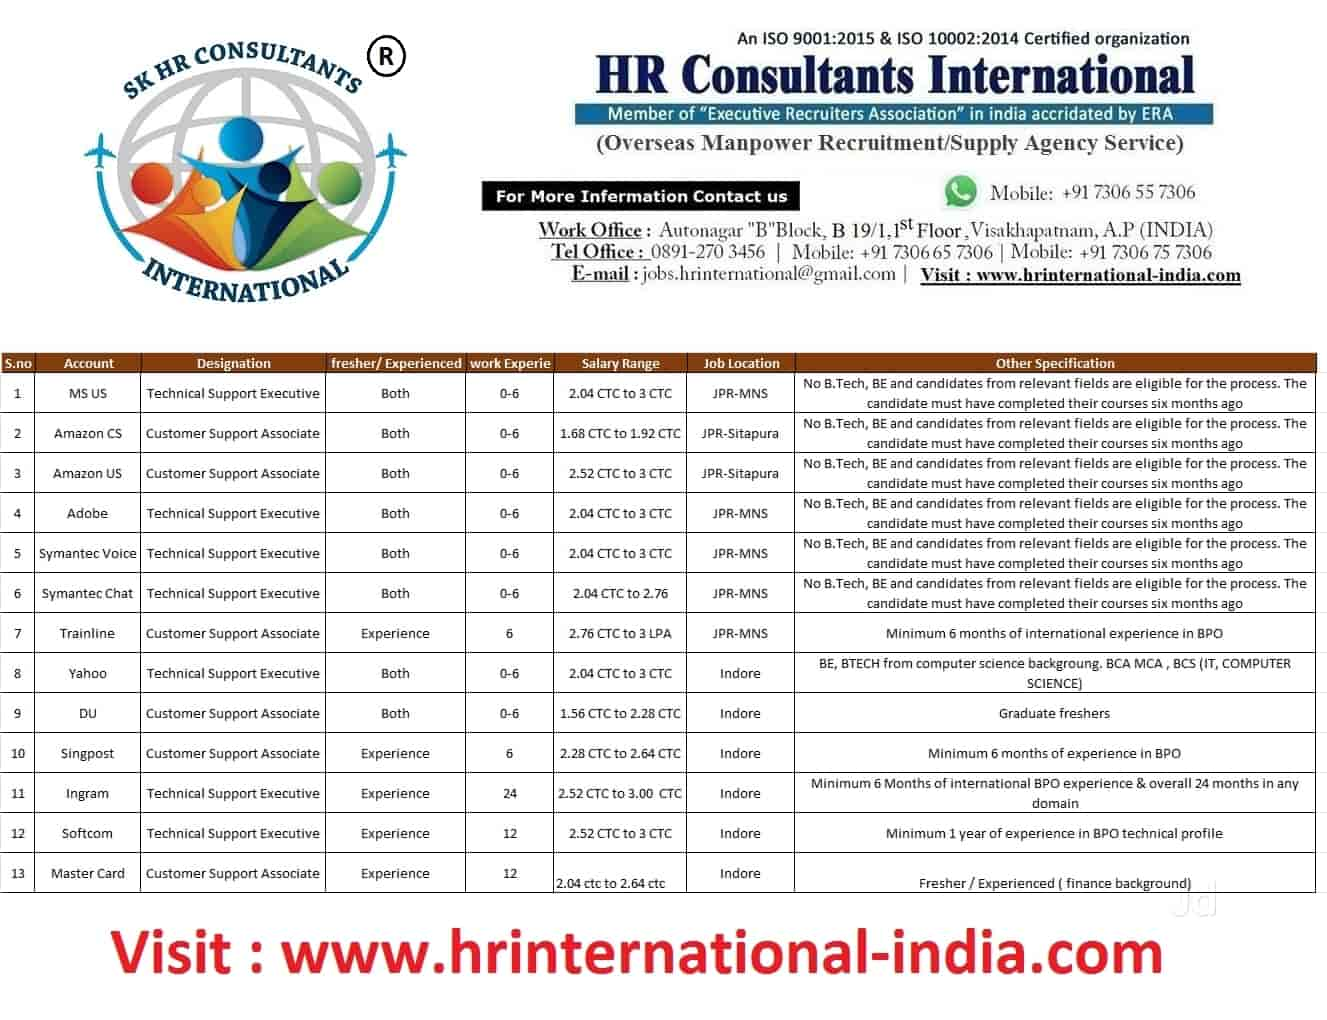 HR Consultants International, Behind LIC Office - Overseas